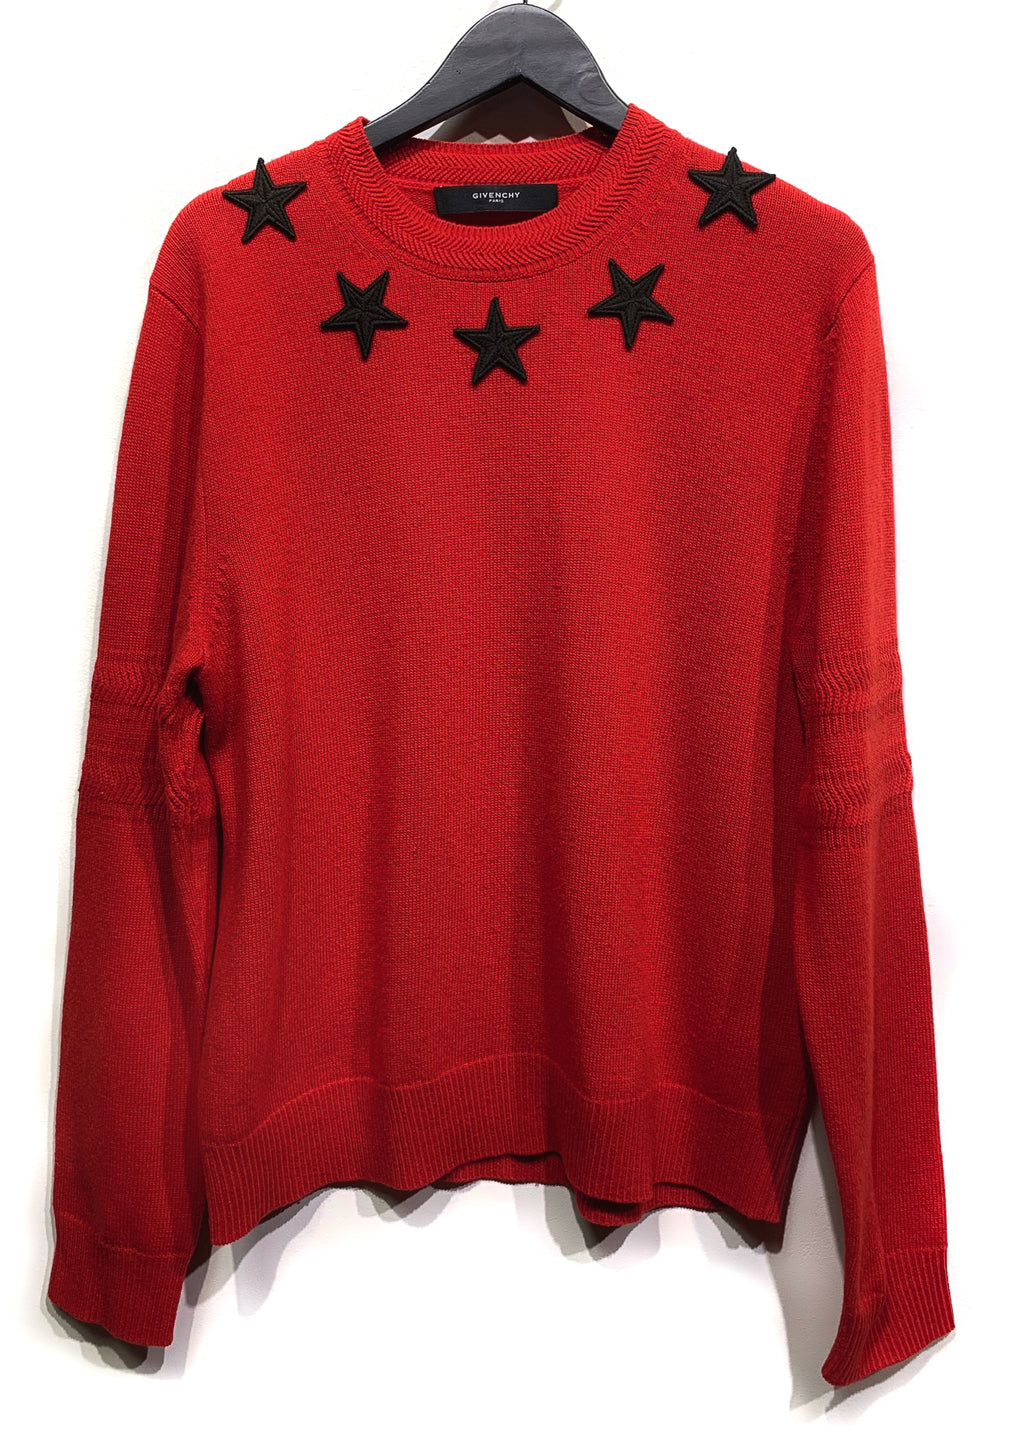 Givenchy Red Wool Crewneck Sweater with Black Star Appliqués